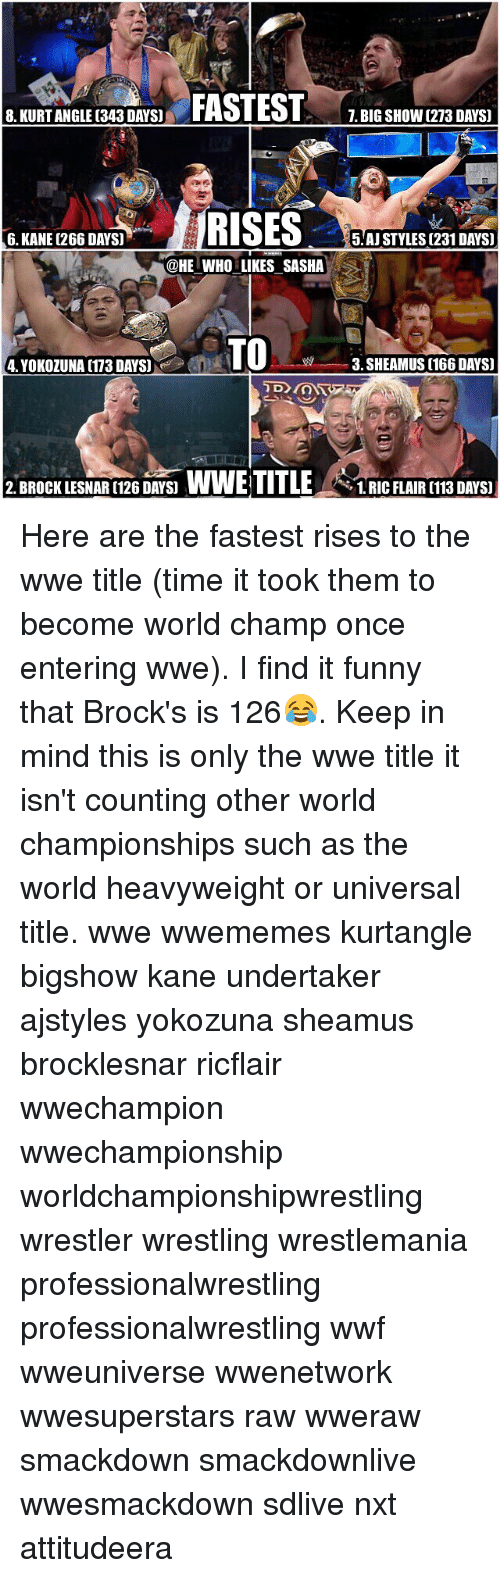 sheamus: FASTEST  8. KURTANGLE (343 DAYSU  RISES  6. KANE (266 DAYS)  5 AJ STYLES(231 DAYS)  @HE WHO LIKES SASHA  TO  3. SHEAMUS (166 DAYS)  2. BROCK LESNAR (126 DAYS WWE TITLE  t, 1.RIC FLAIR (113 DAYS) Here are the fastest rises to the wwe title (time it took them to become world champ once entering wwe). I find it funny that Brock's is 126😂. Keep in mind this is only the wwe title it isn't counting other world championships such as the world heavyweight or universal title. wwe wwememes kurtangle bigshow kane undertaker ajstyles yokozuna sheamus brocklesnar ricflair wwechampion wwechampionship worldchampionshipwrestling wrestler wrestling wrestlemania professionalwrestling professionalwrestling wwf wweuniverse wwenetwork wwesuperstars raw wweraw smackdown smackdownlive wwesmackdown sdlive nxt attitudeera